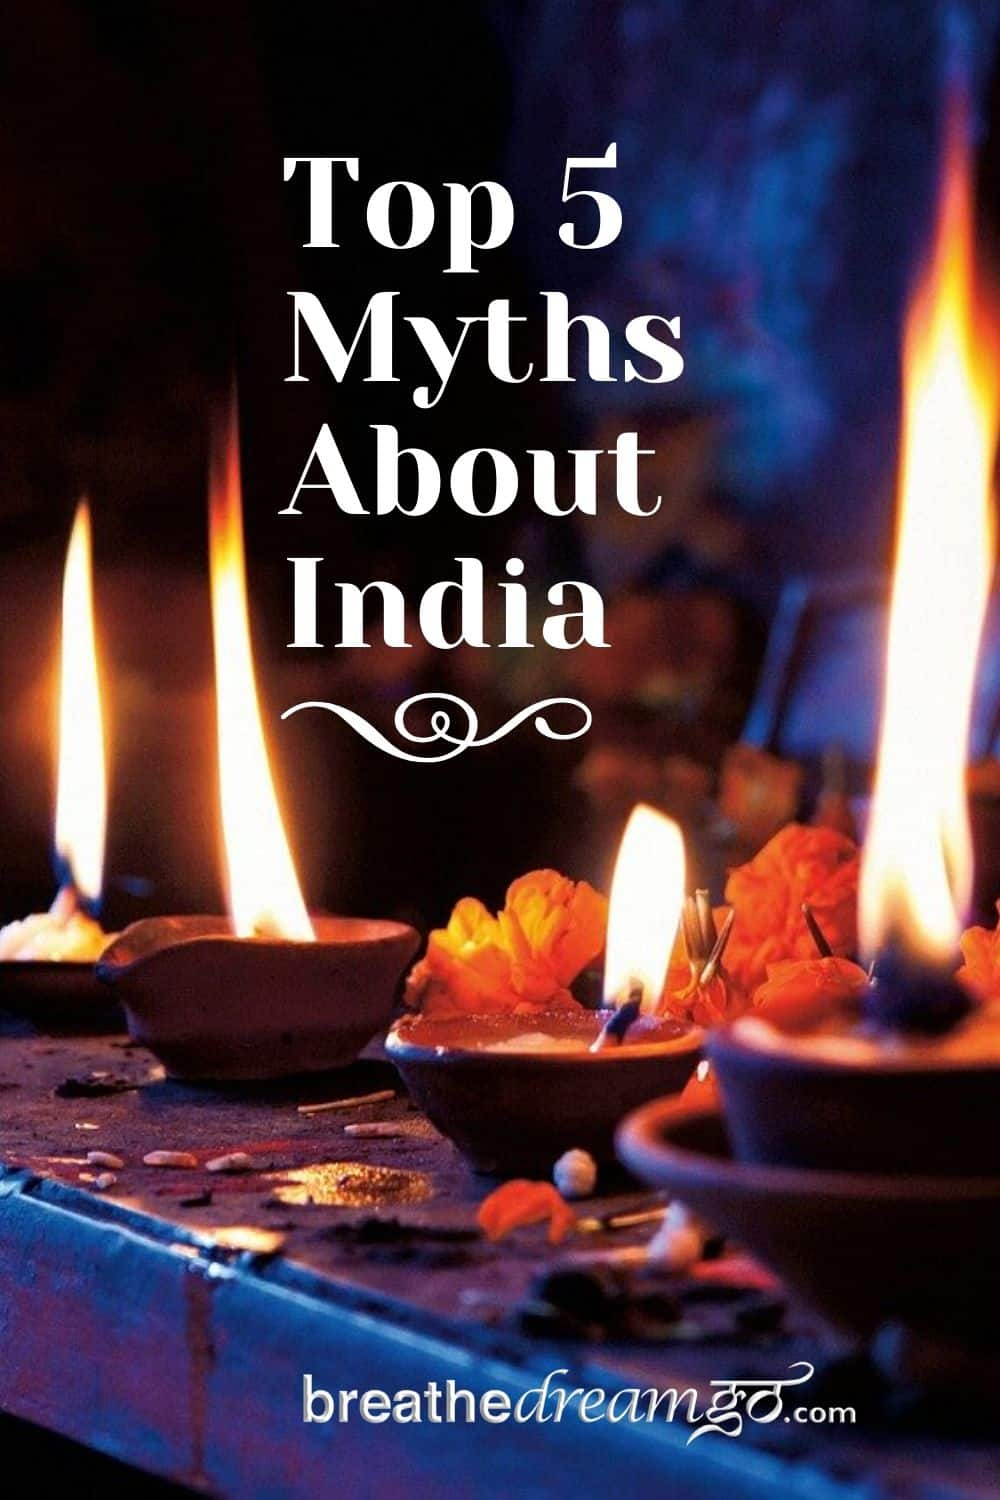 Top 5 Myths about India